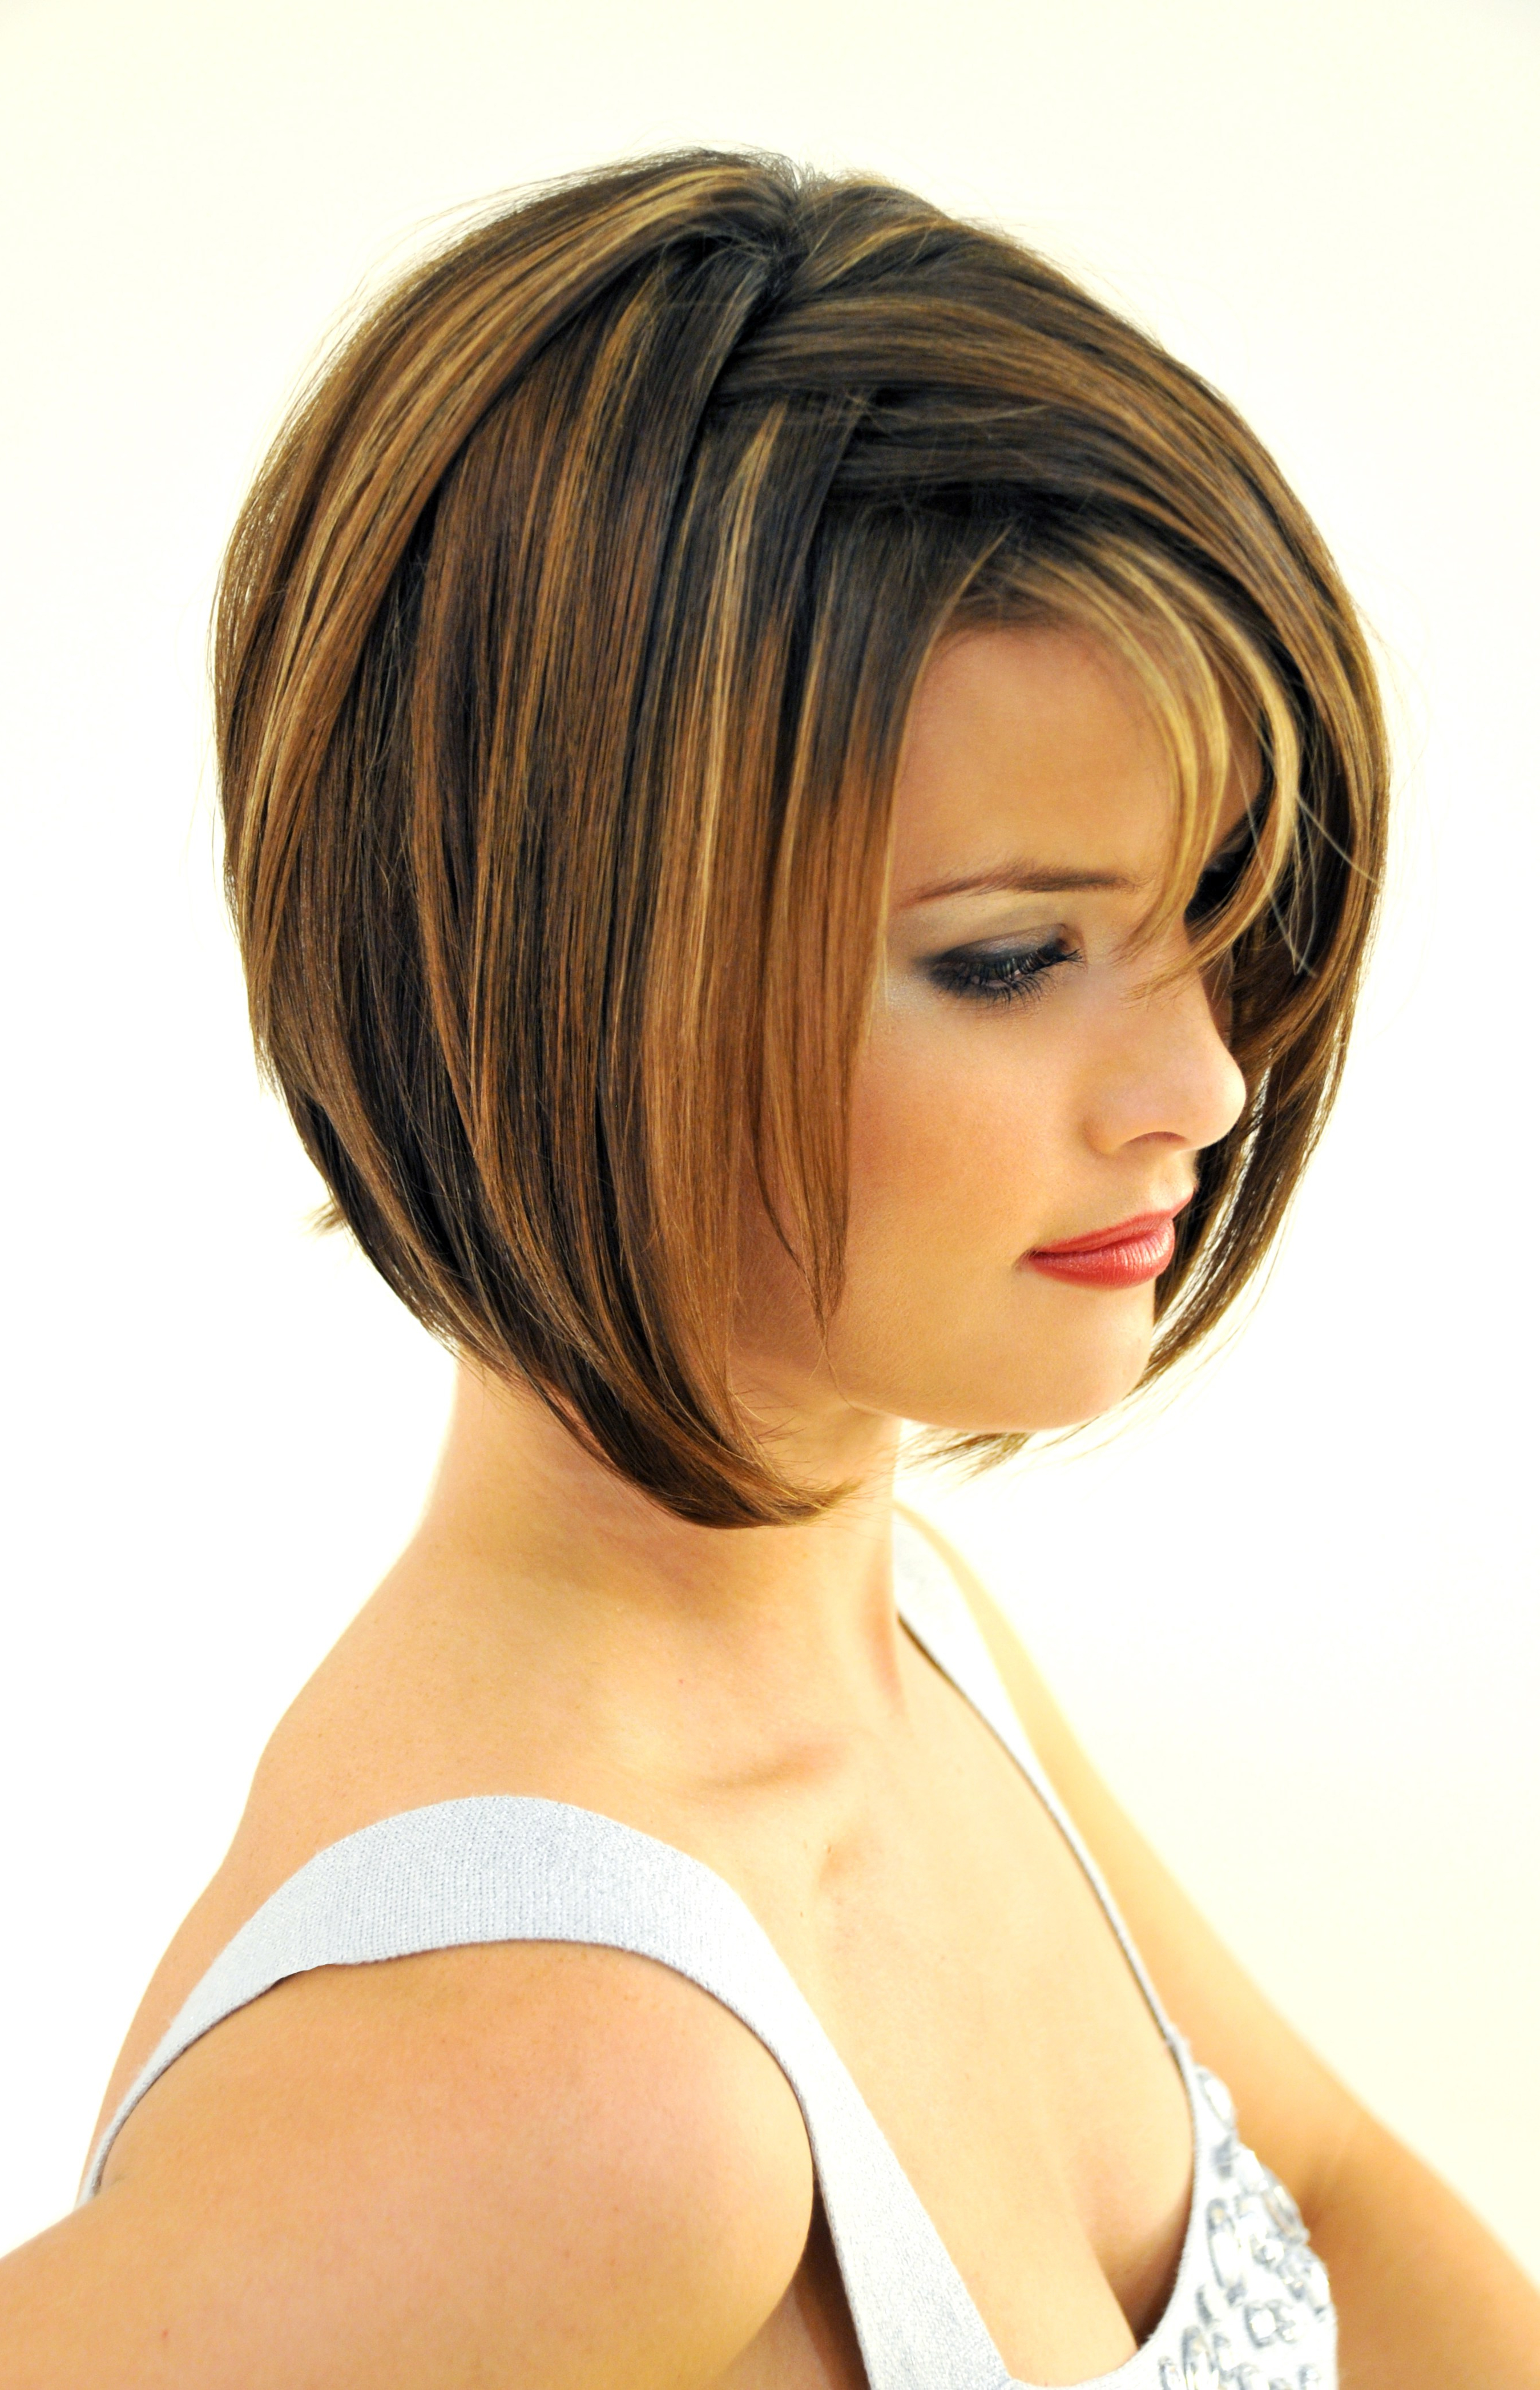 Short Layered Bob Haircut With Bangs – Hairstyle For Women & Man In Textured Bob Haircuts With Bangs (Gallery 10 of 20)